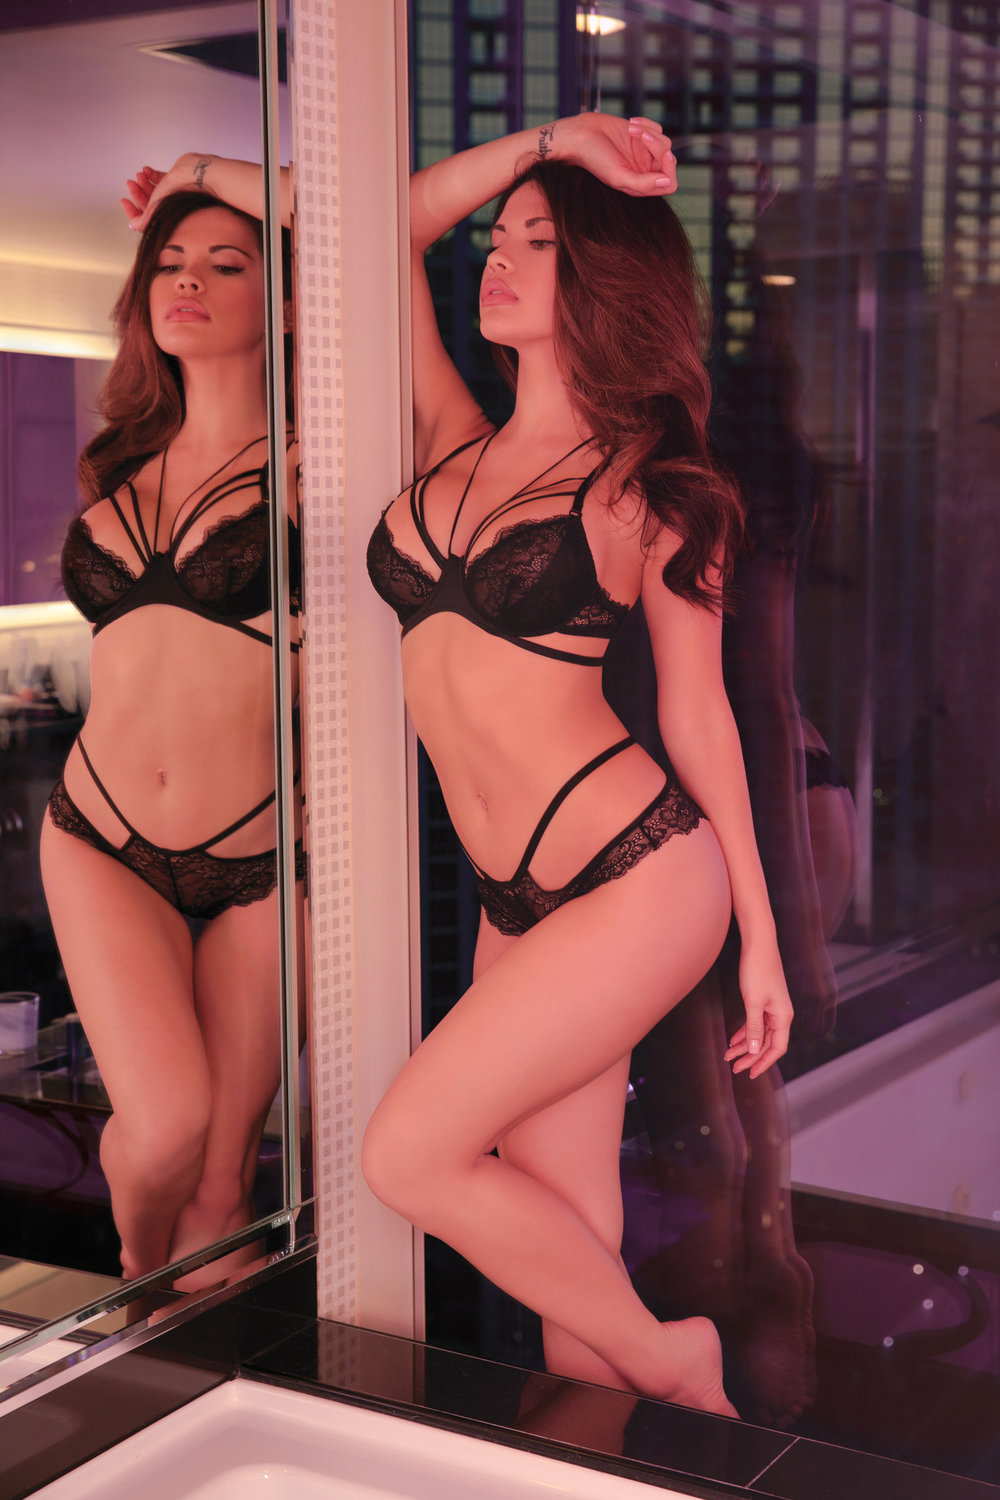 Tawny Vegas Double Vision Victor Sanabrais Photographer